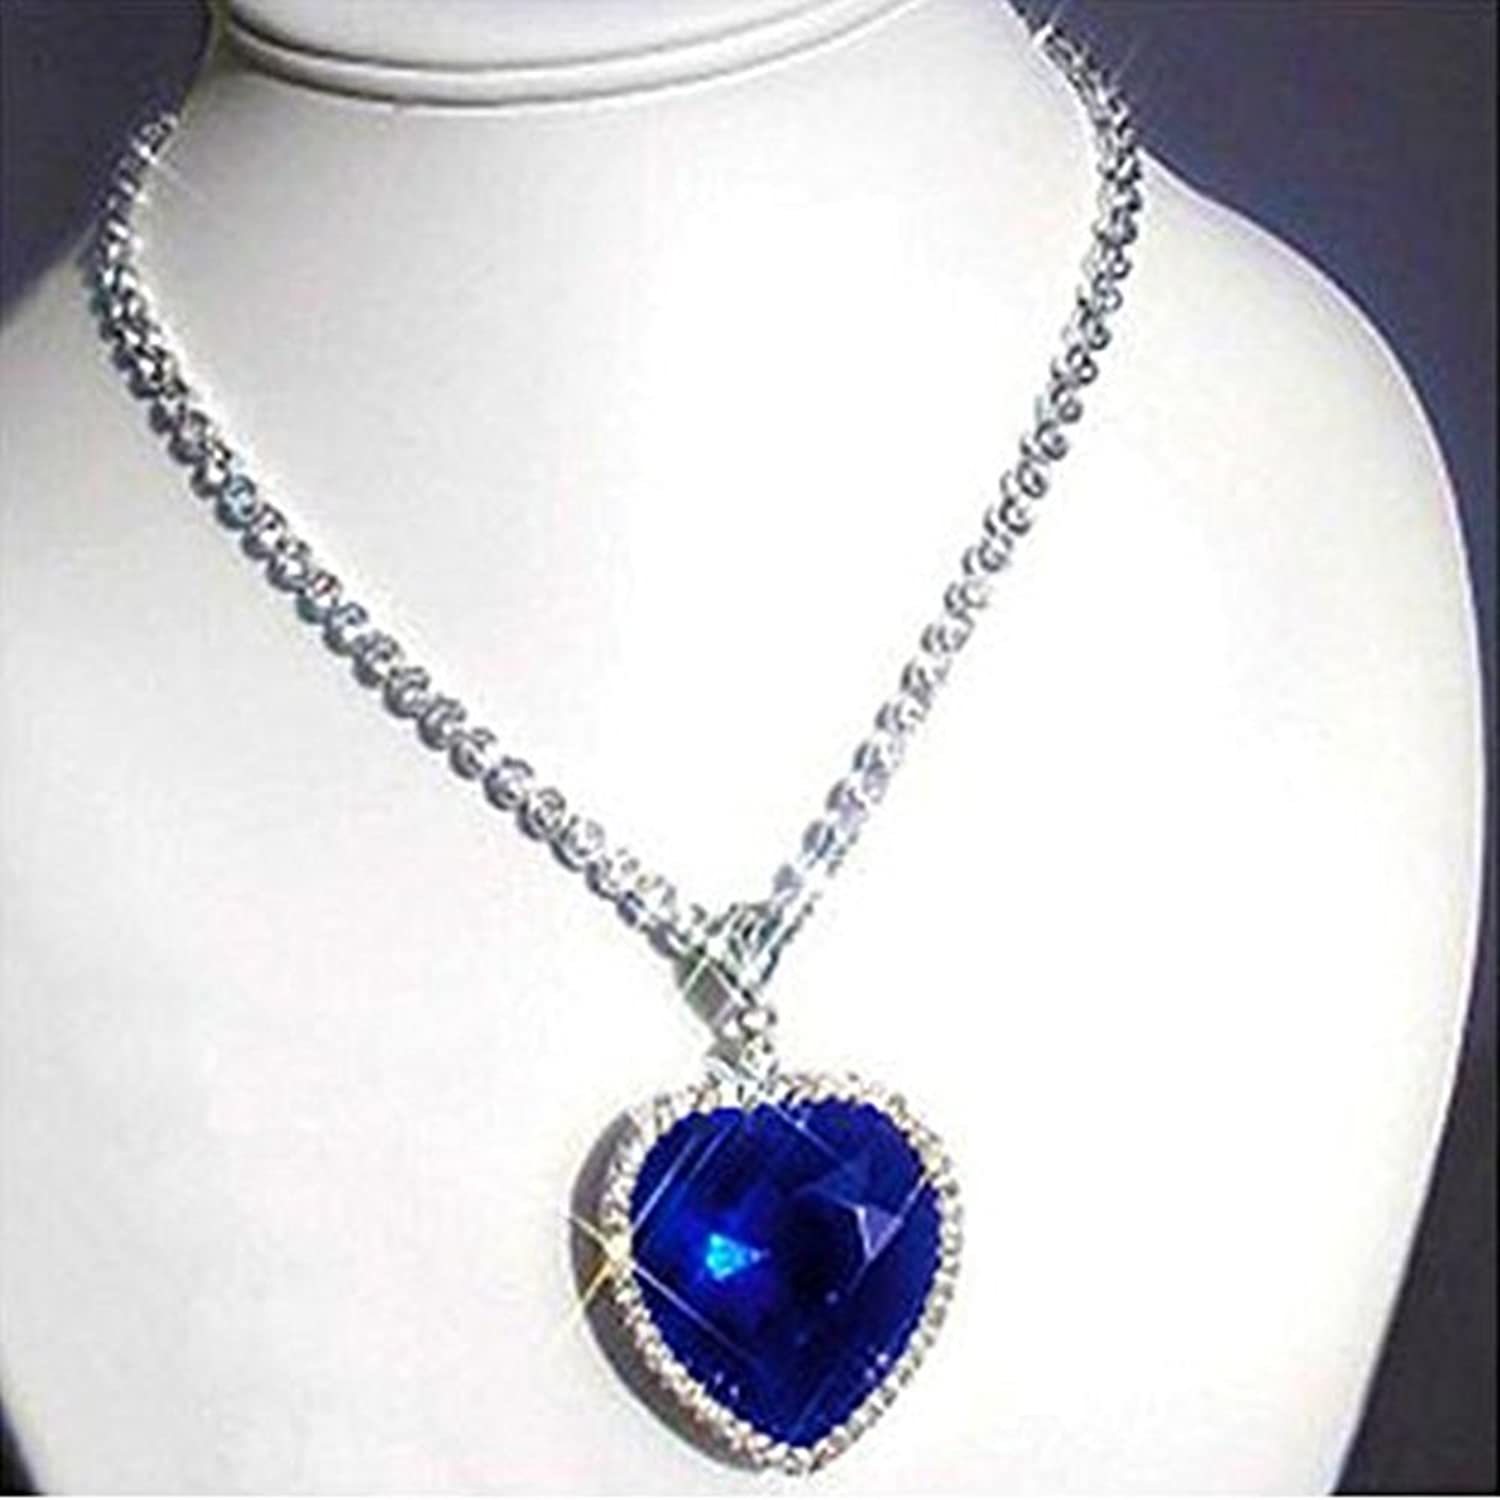 pendant product jewelers anastella friedman necklace sapphire pear s